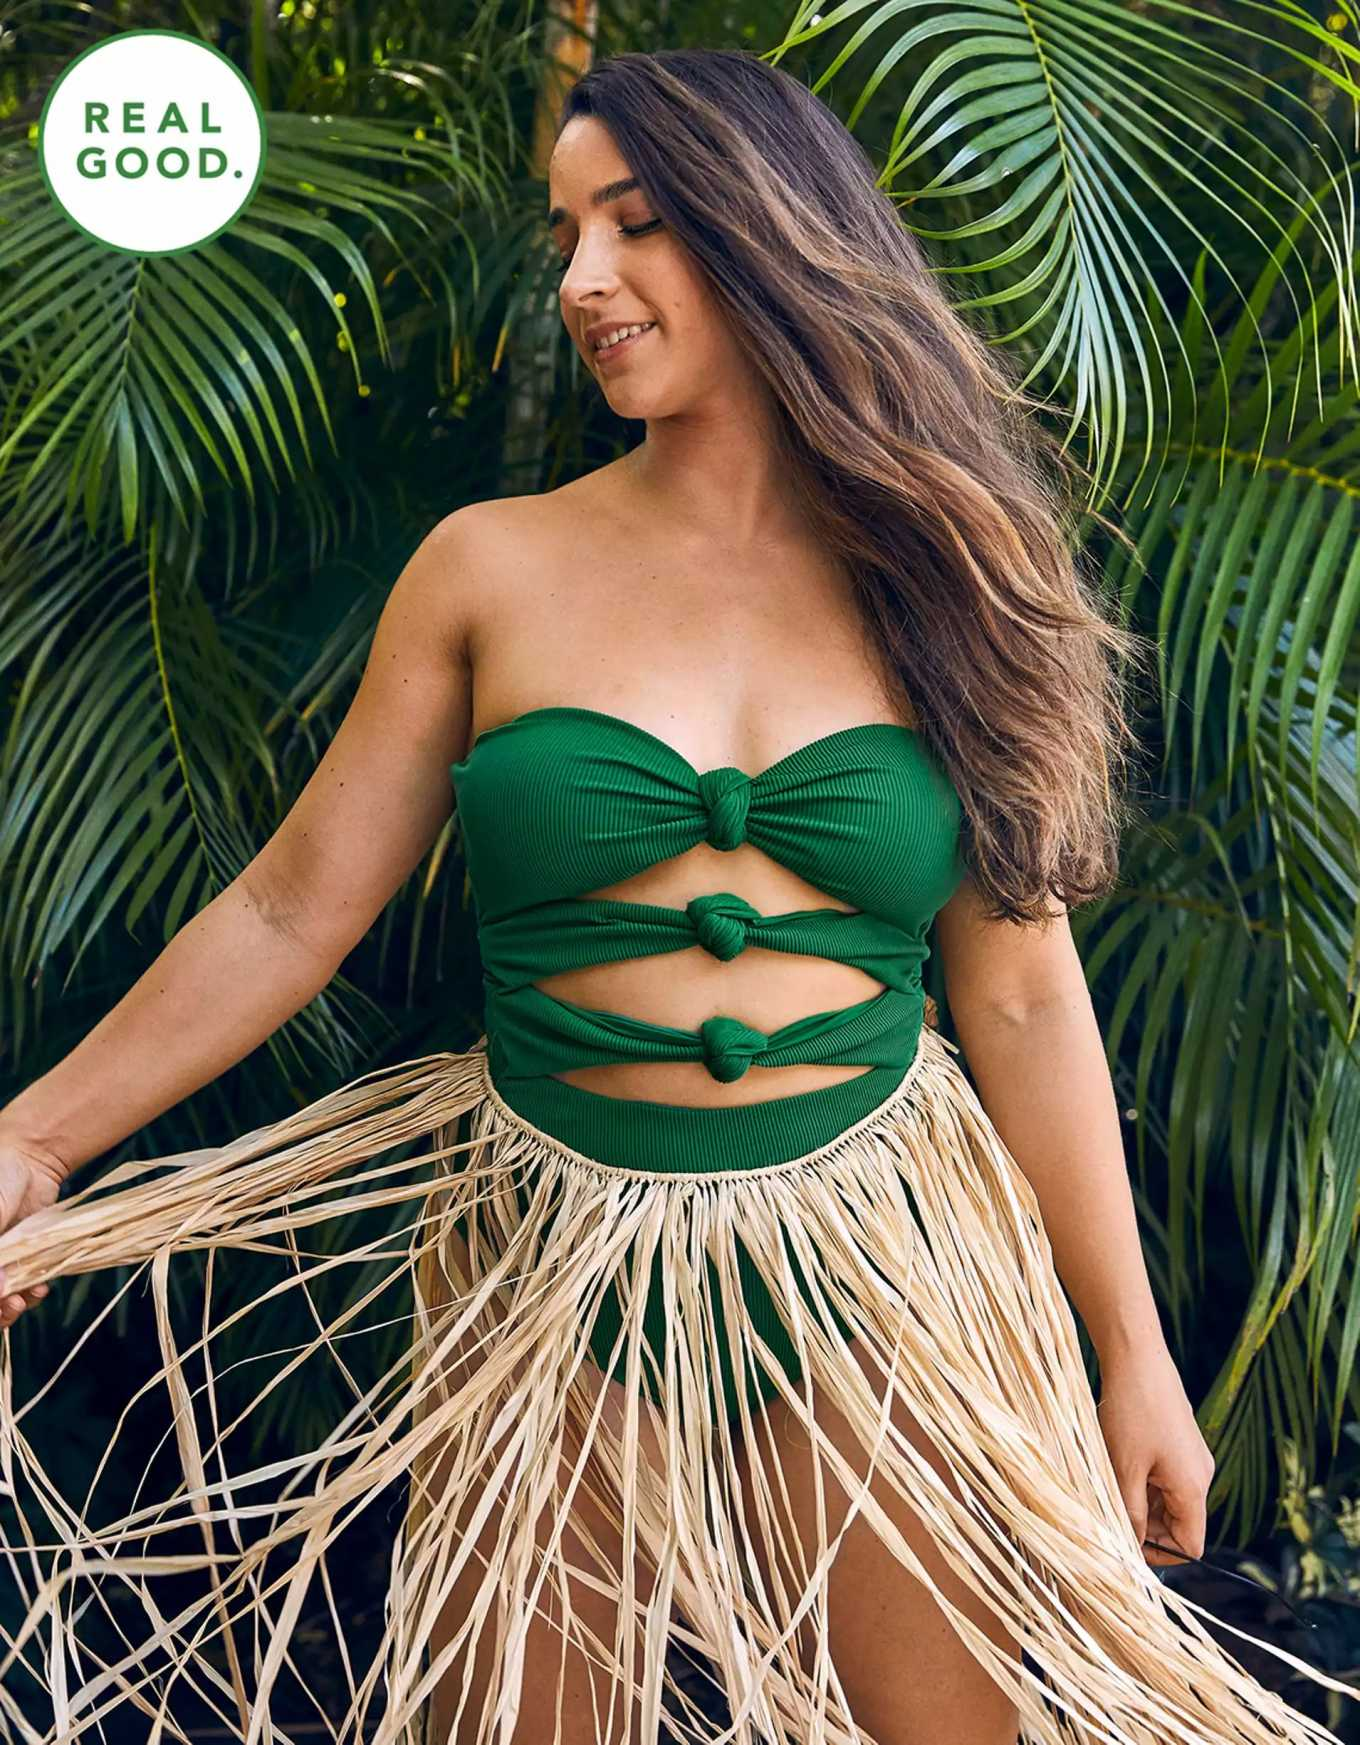 Aly Raisman for Aerie's Real Good Swimsuit Collection (March 2020)